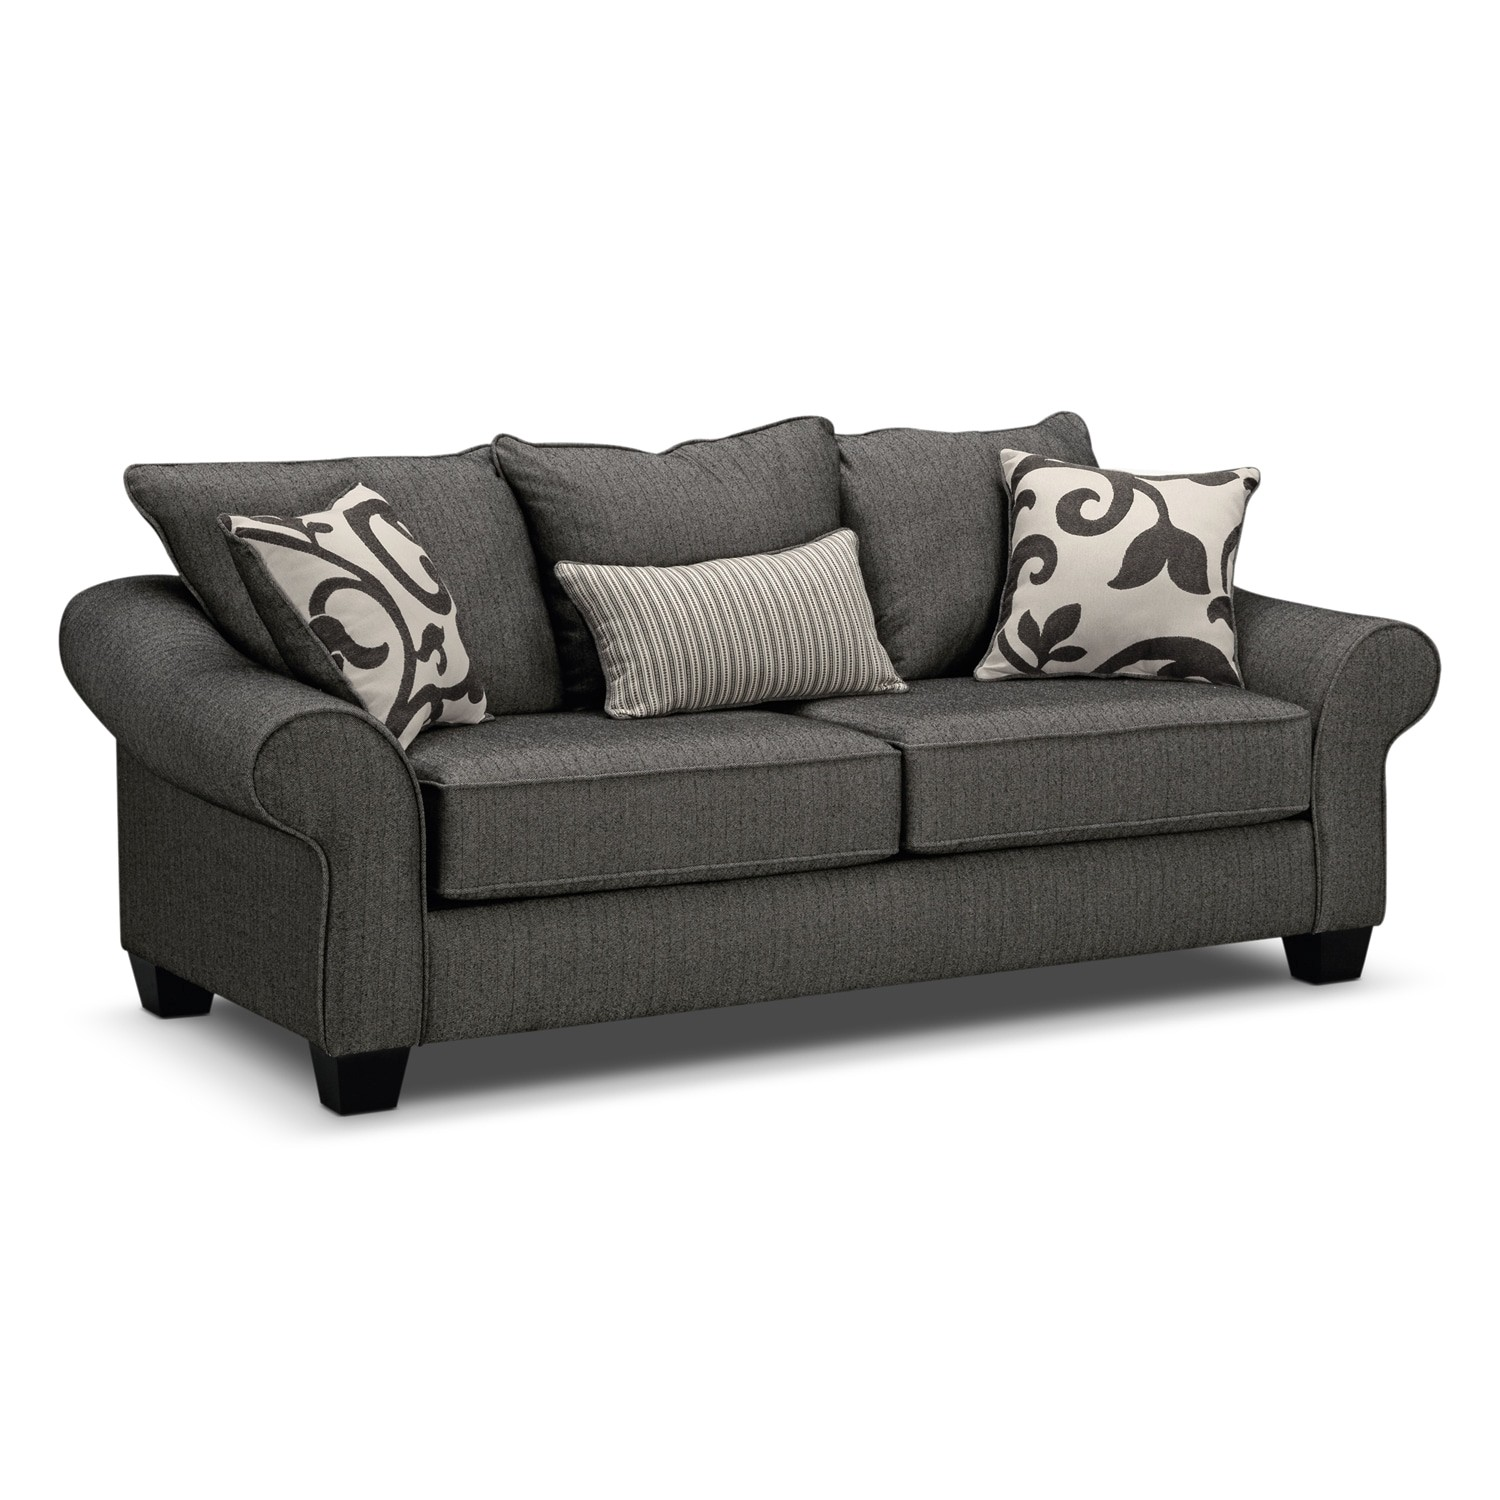 Grey Sleeper sofa Best Of Colette Full Memory Foam Sleeper sofa Gray Gallery